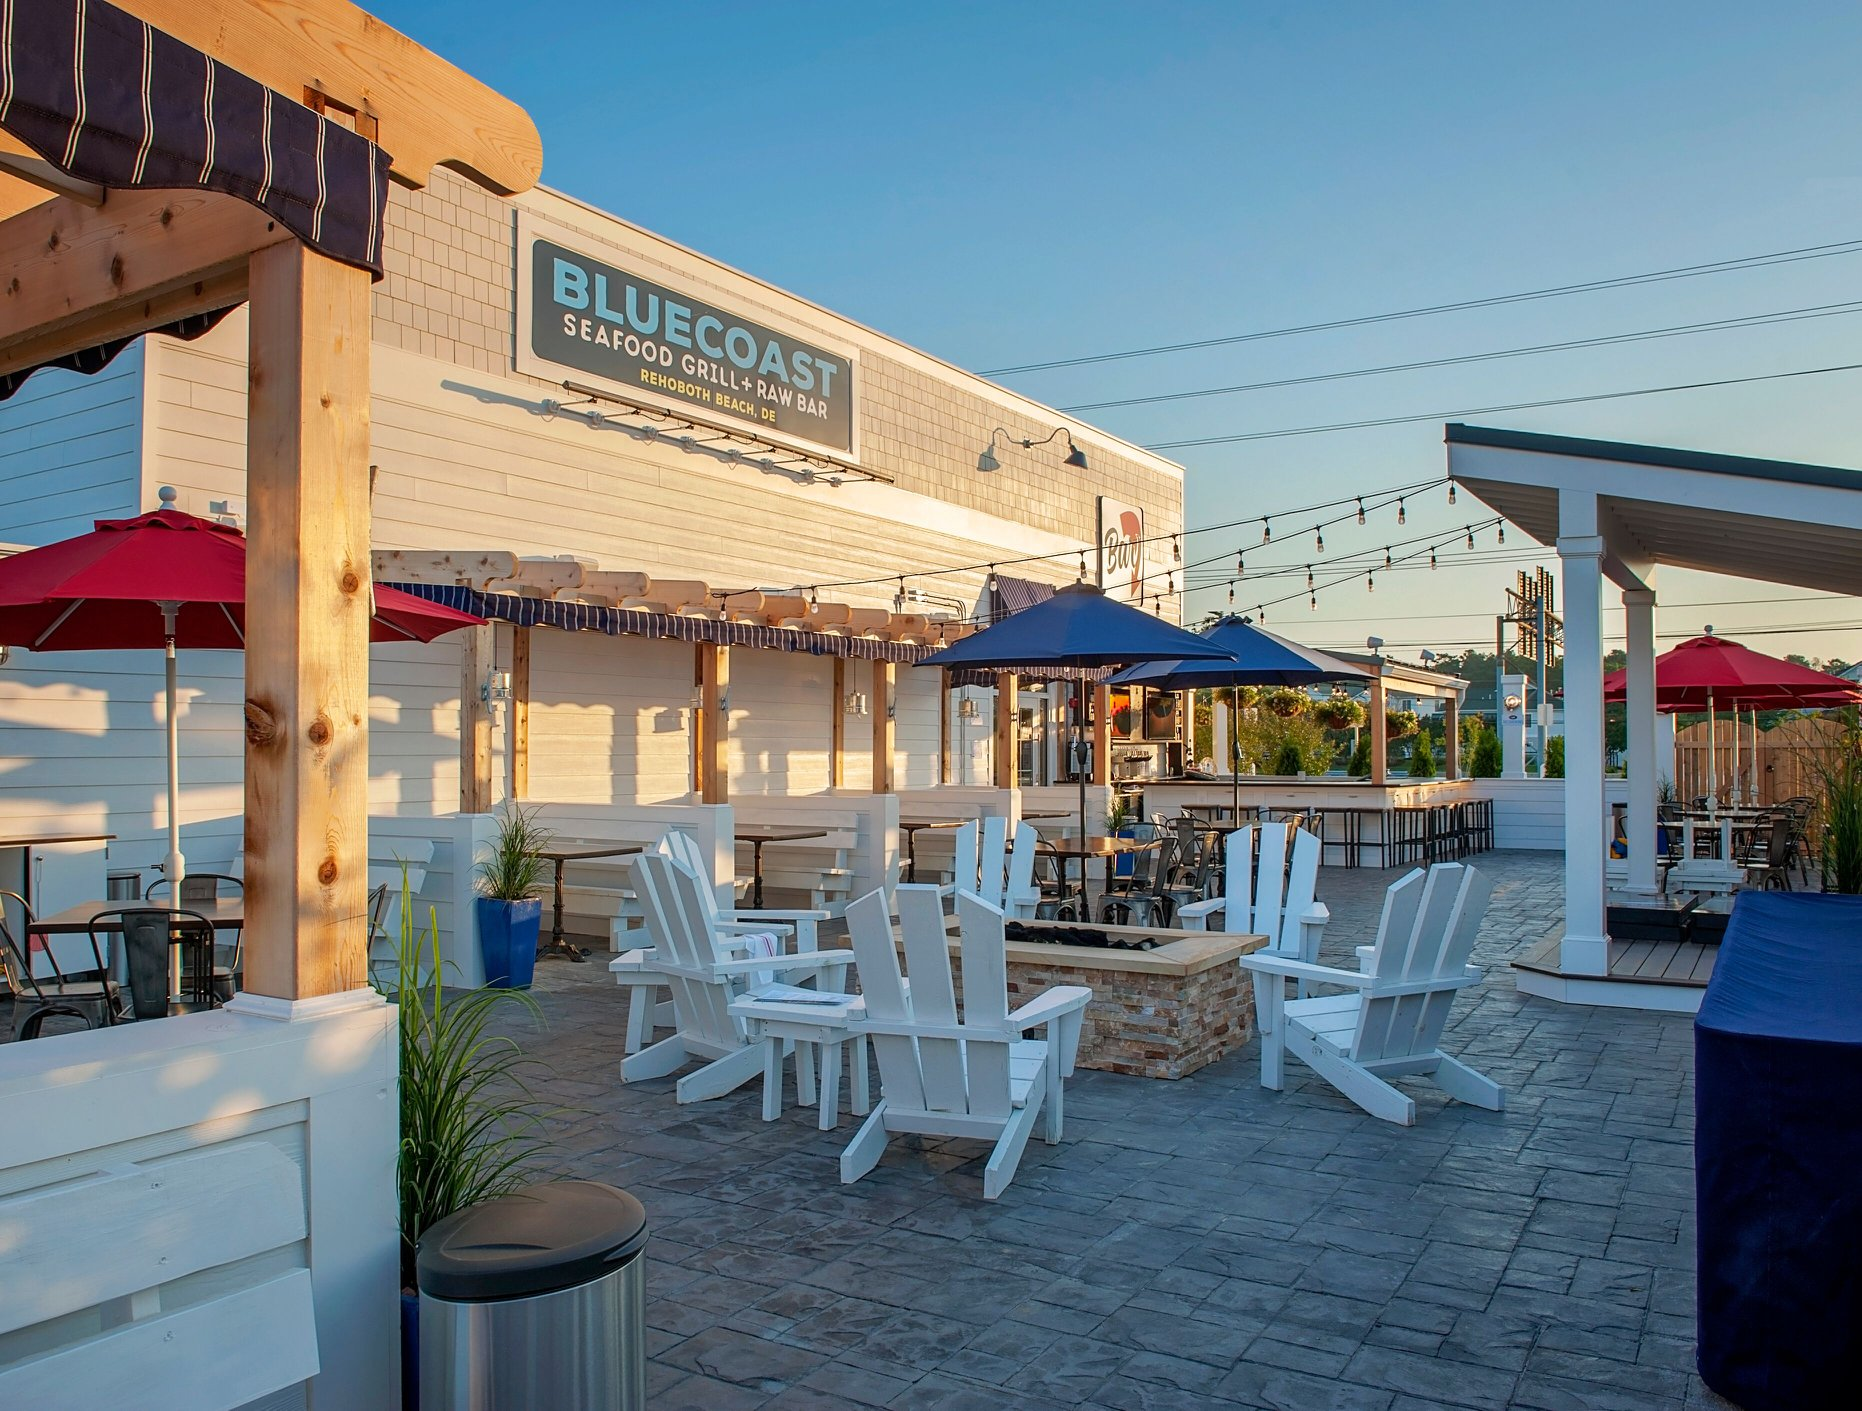 Bluecoast Seafood Kitchen & Bar, Rehoboth Beach